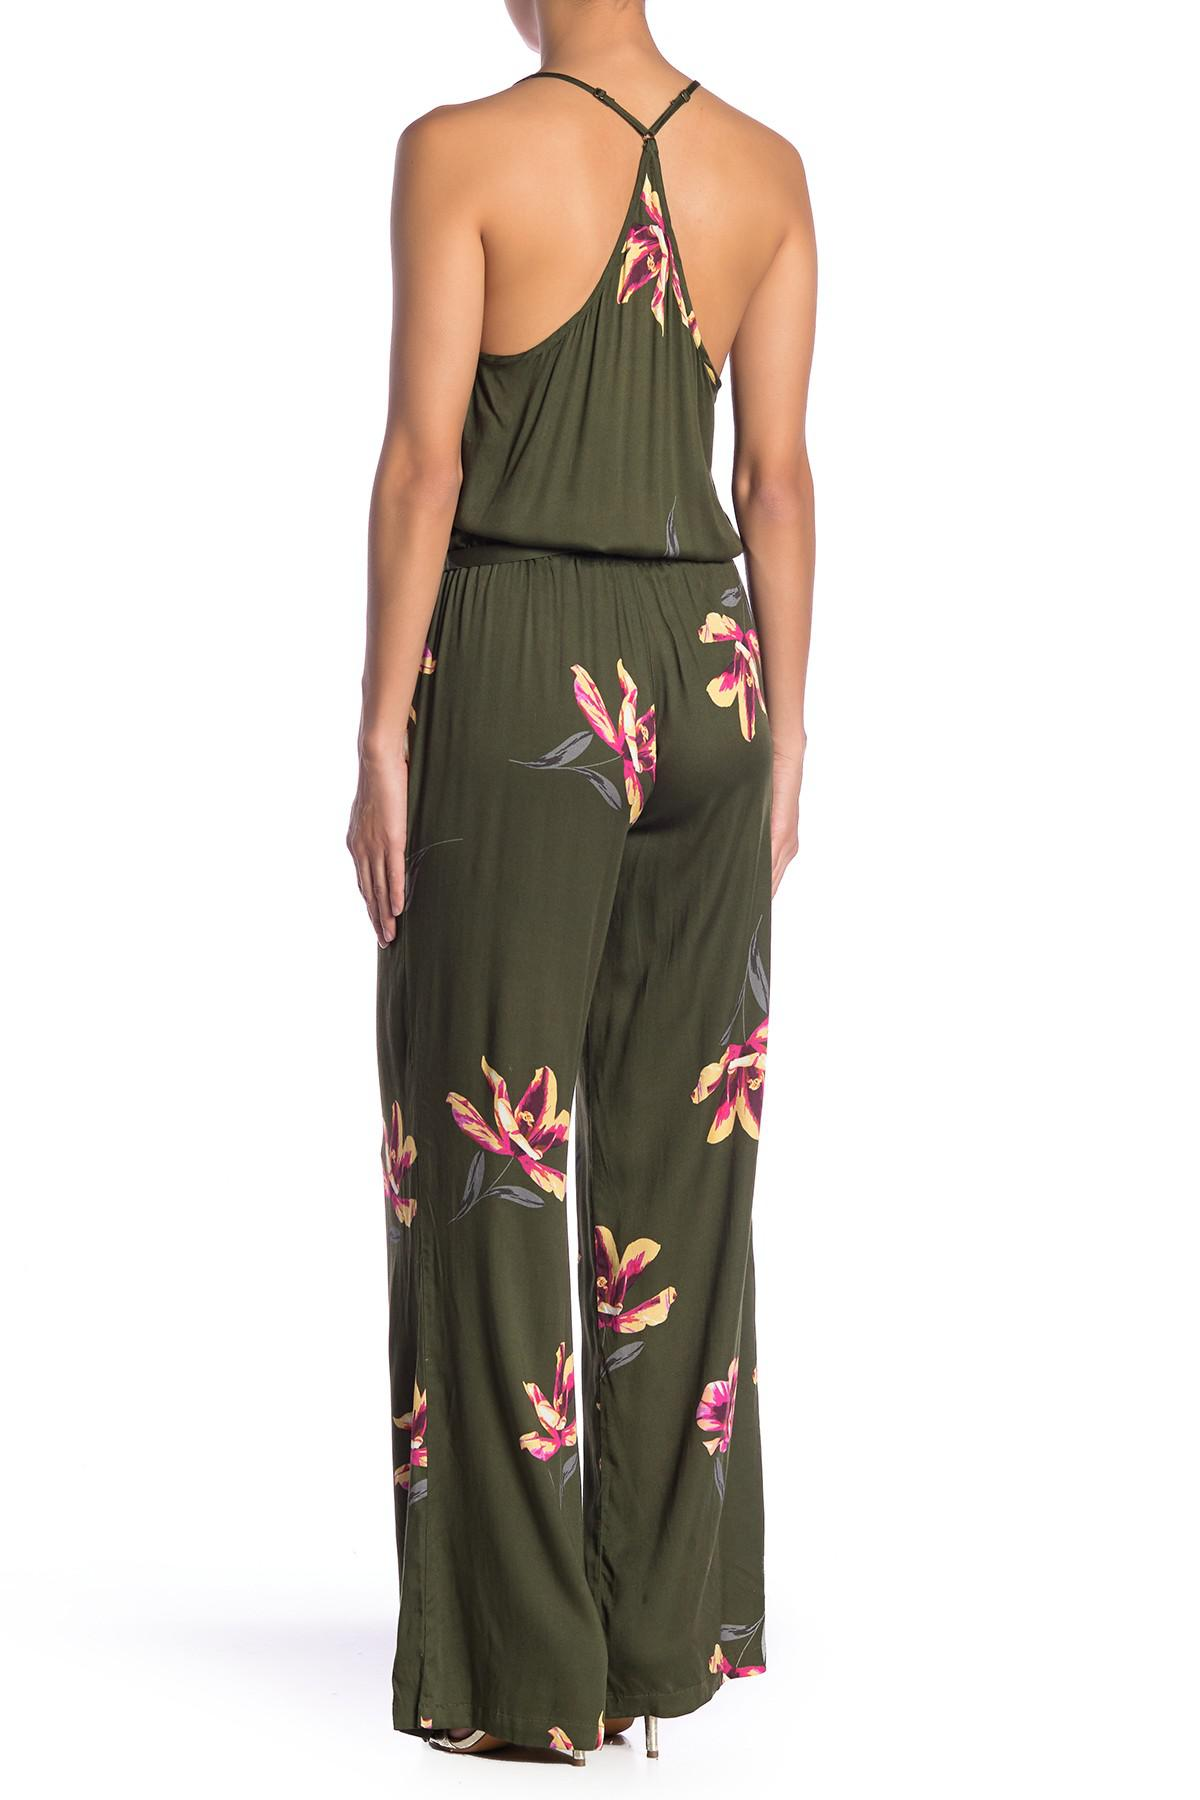 67195794090 Gallery. Previously sold at  Nordstrom Rack · Women s Lace Jumpsuits ...